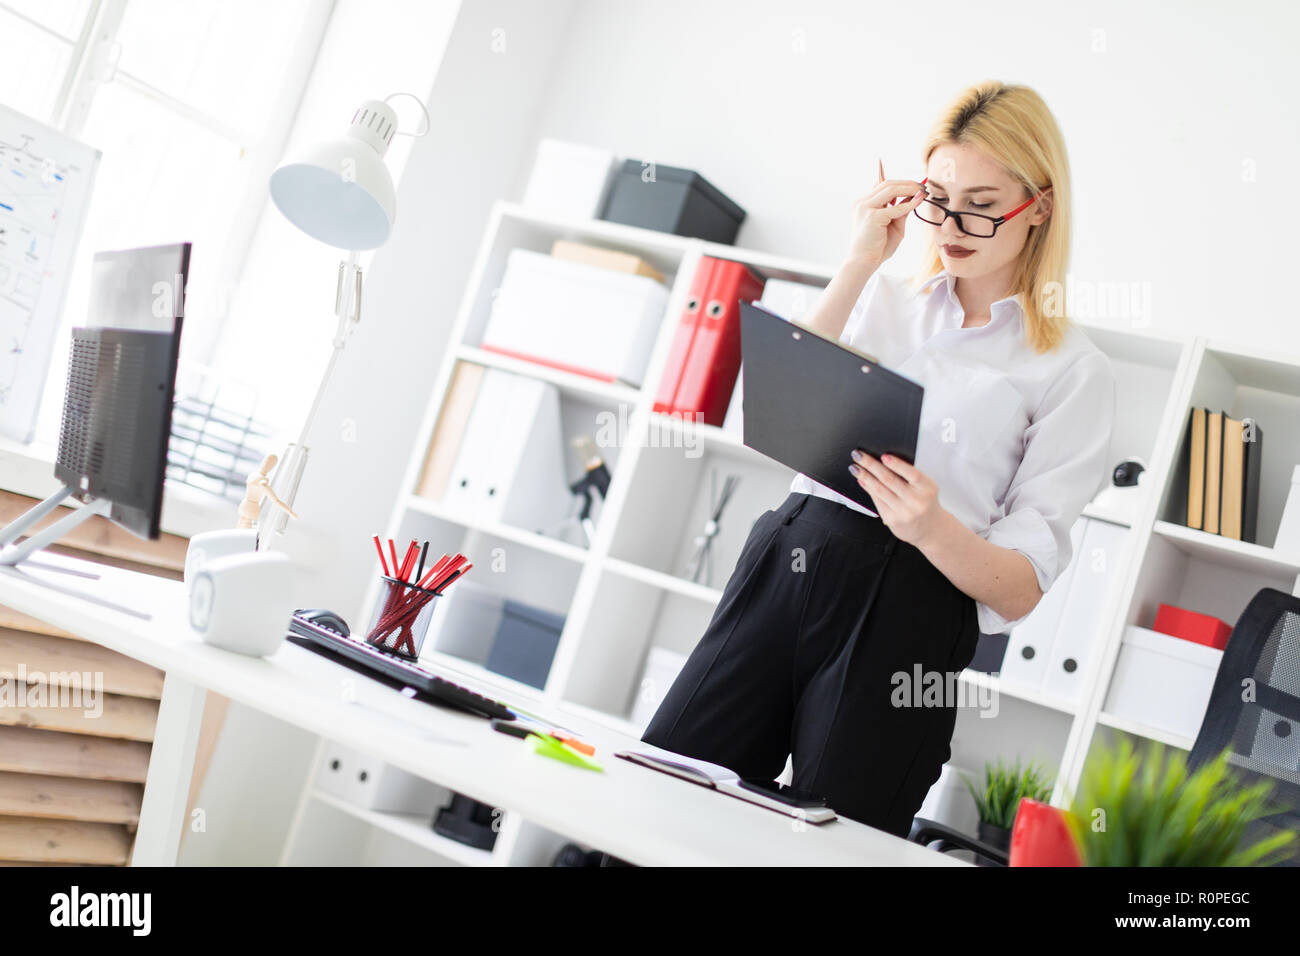 A young girl standing in the office at the computer Desk and fills out a document. - Stock Image